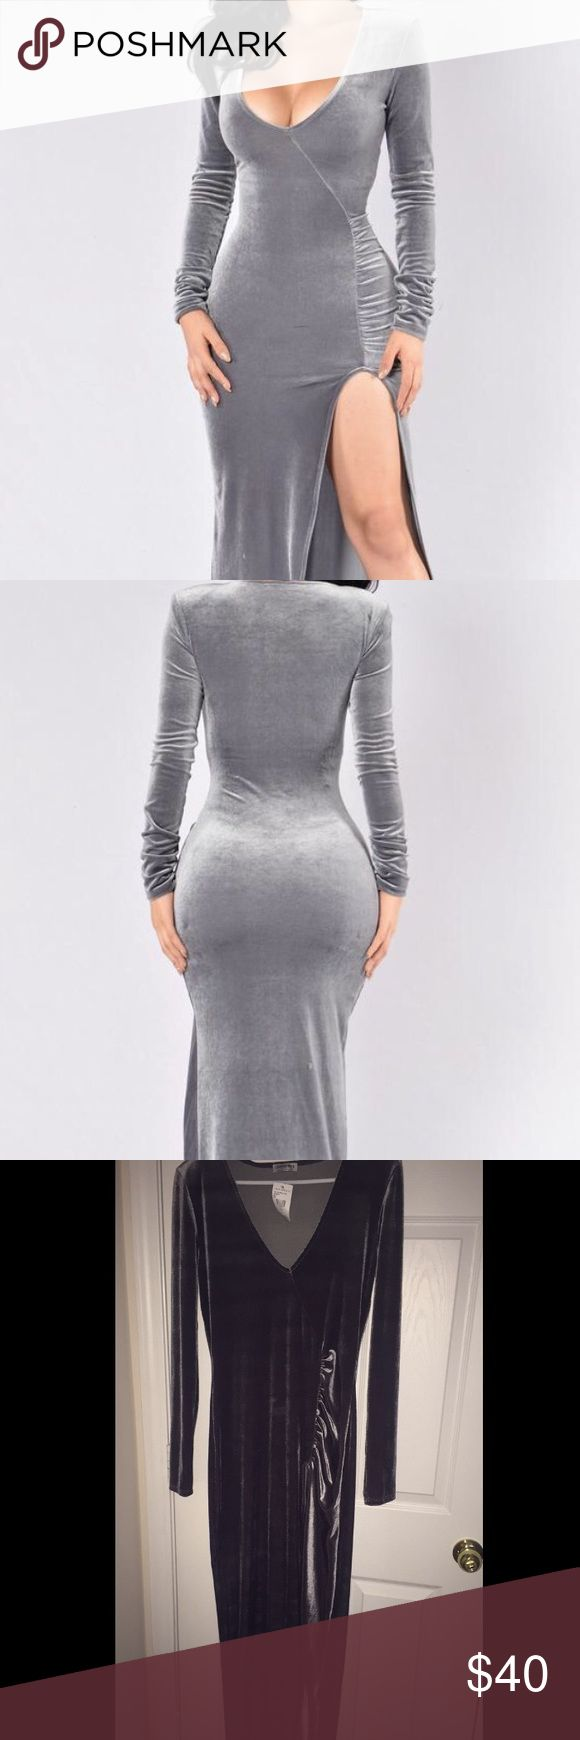 Grey party dress Runs big, stretch, fit well, never worn. Price is negotiable ‼️‼️‼️ Fashion Nova Dresses Long Sleeve